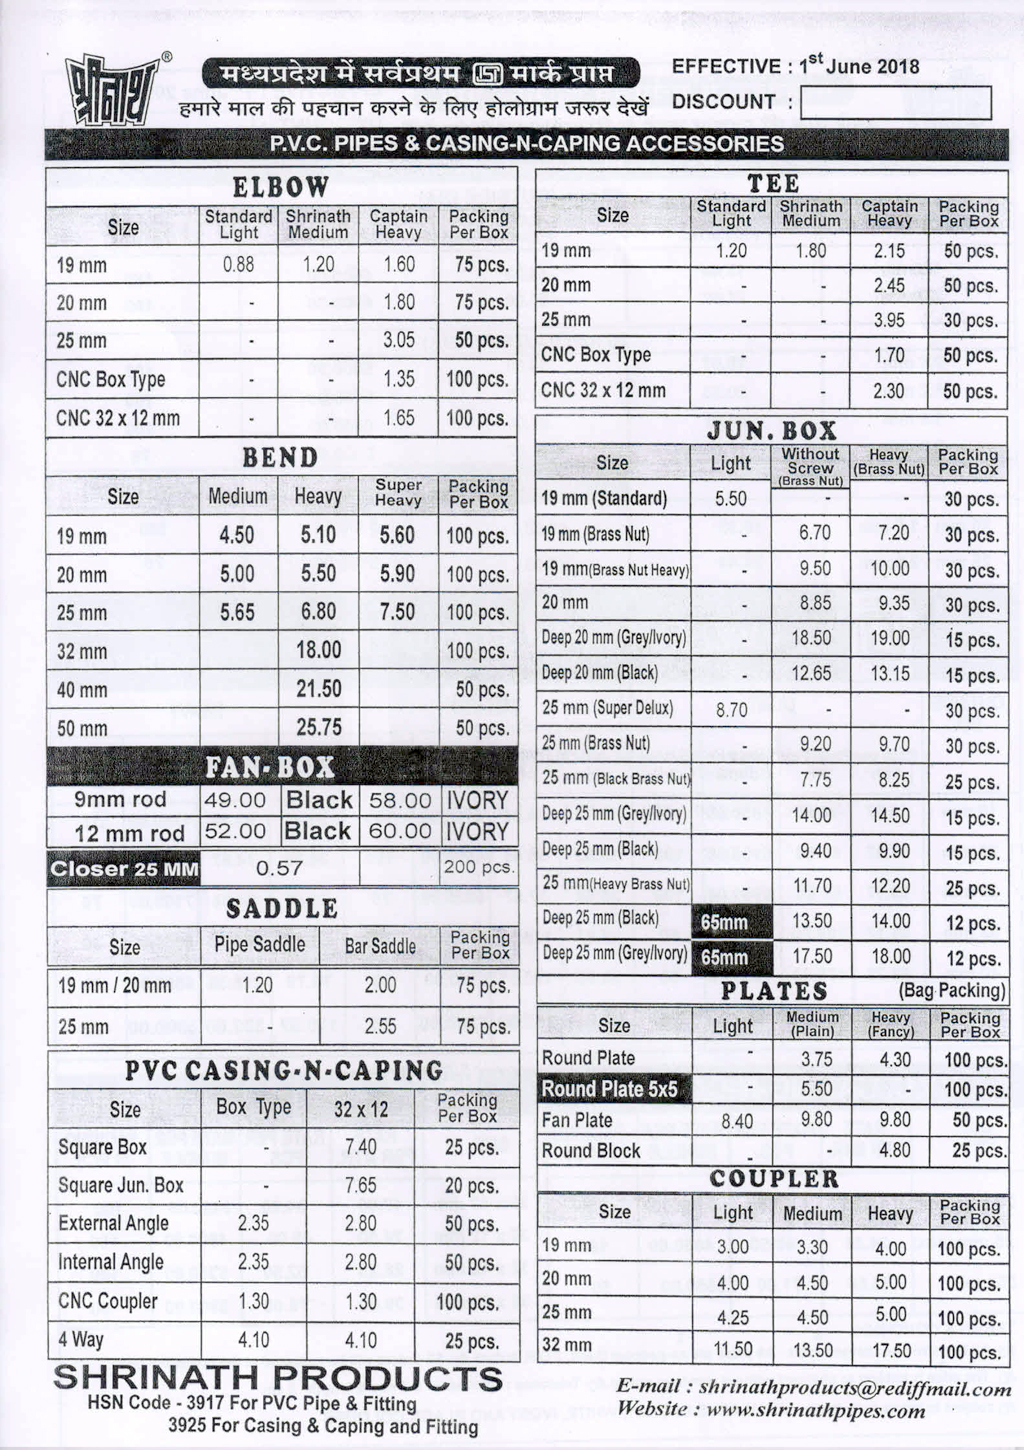 tata gi pipes price list 2017 pdf